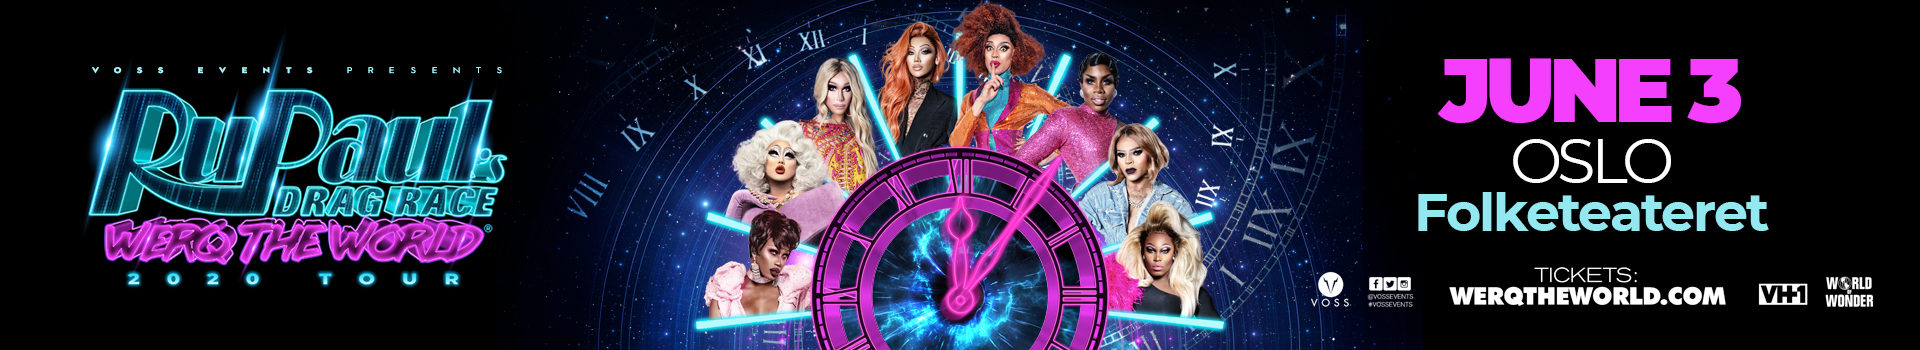 UTSATT! RuPaul`s Drag Race: Werq the World Tour 2020